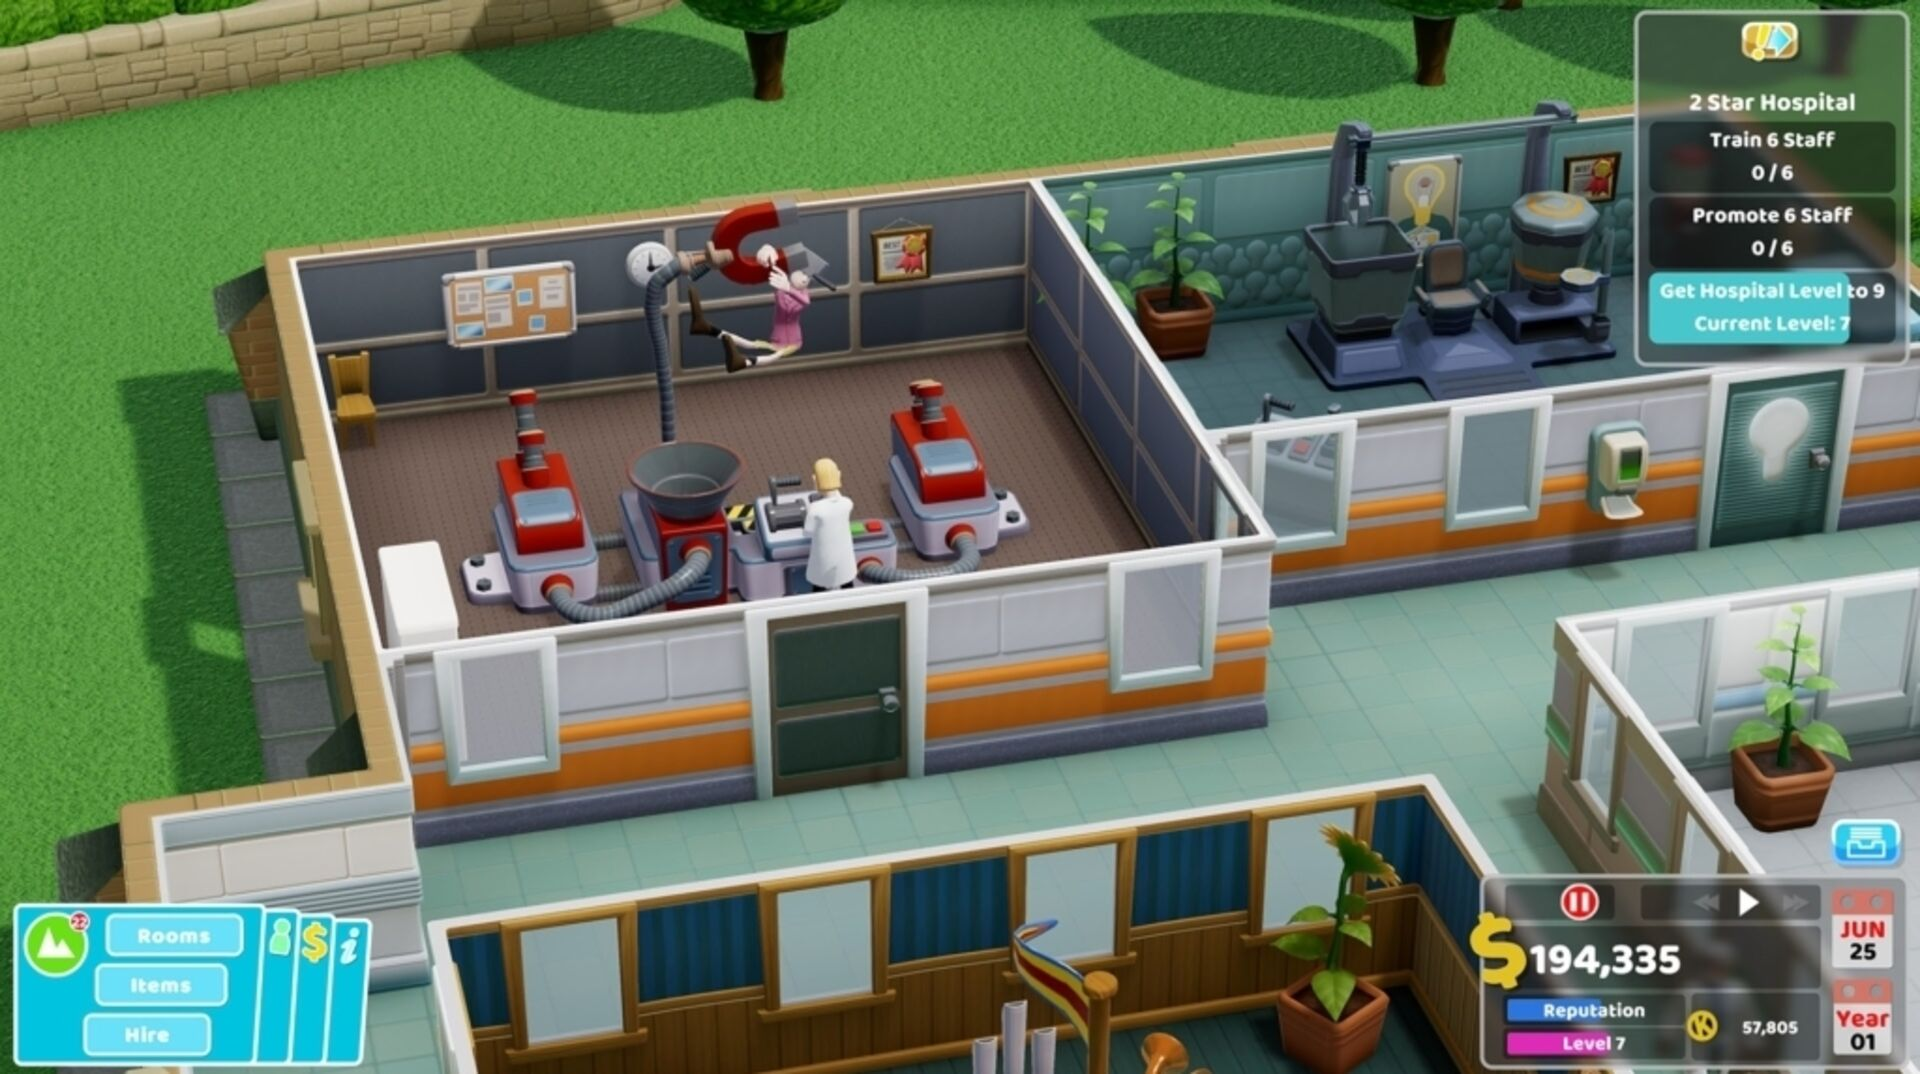 Best Tycoon Games 2020.Two Point Hospital On Consoles Delayed To 2020 Eurogamer Net